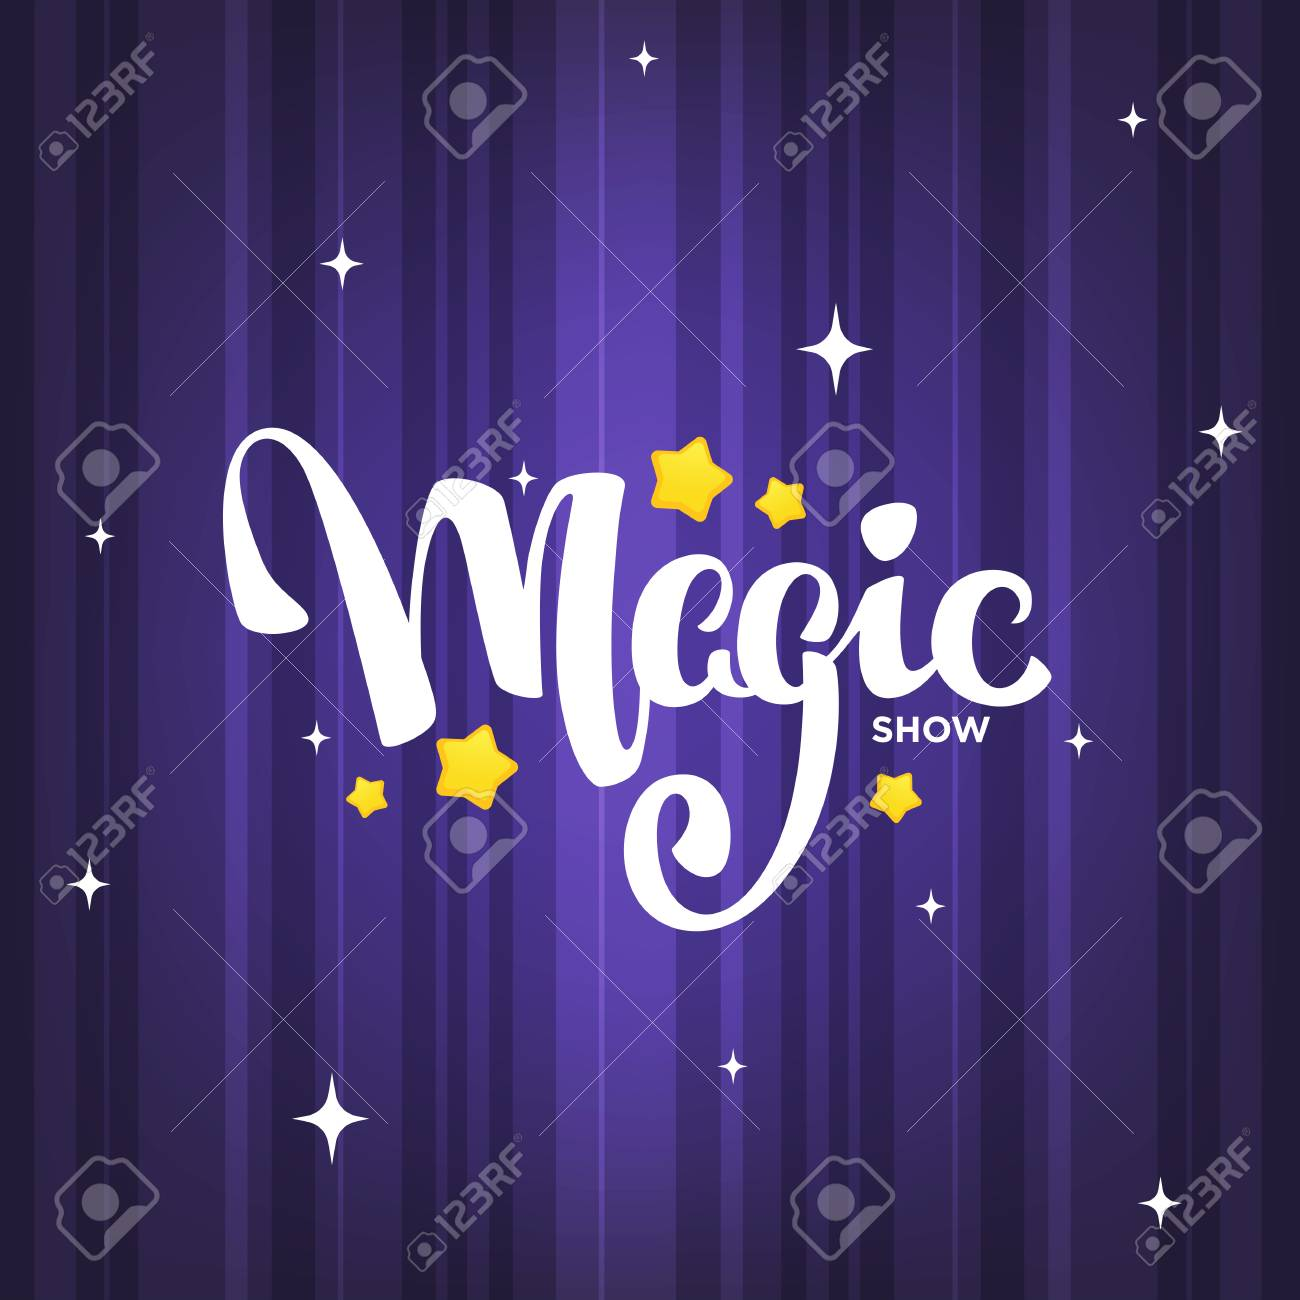 Magic Show, letteing composition on magic background for your logo, poster, invitation - 116940474